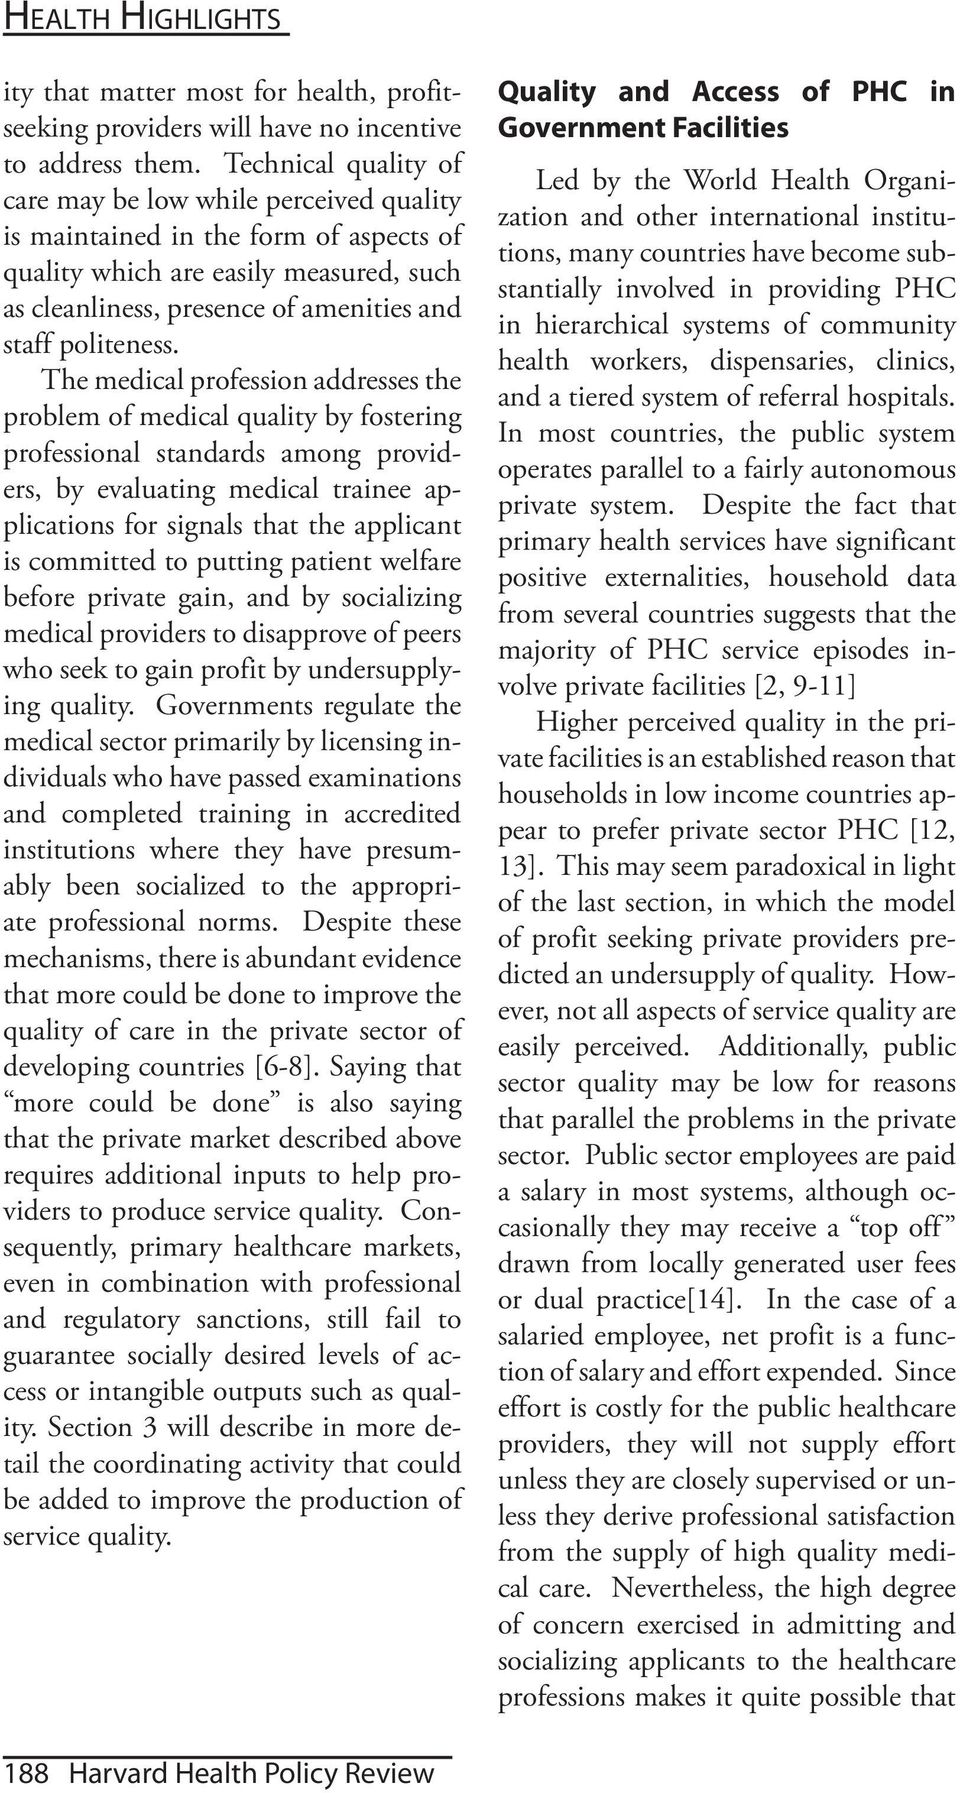 The medical profession addresses the problem of medical quality by fostering professional standards among providers, by evaluating medical trainee applications for signals that the applicant is